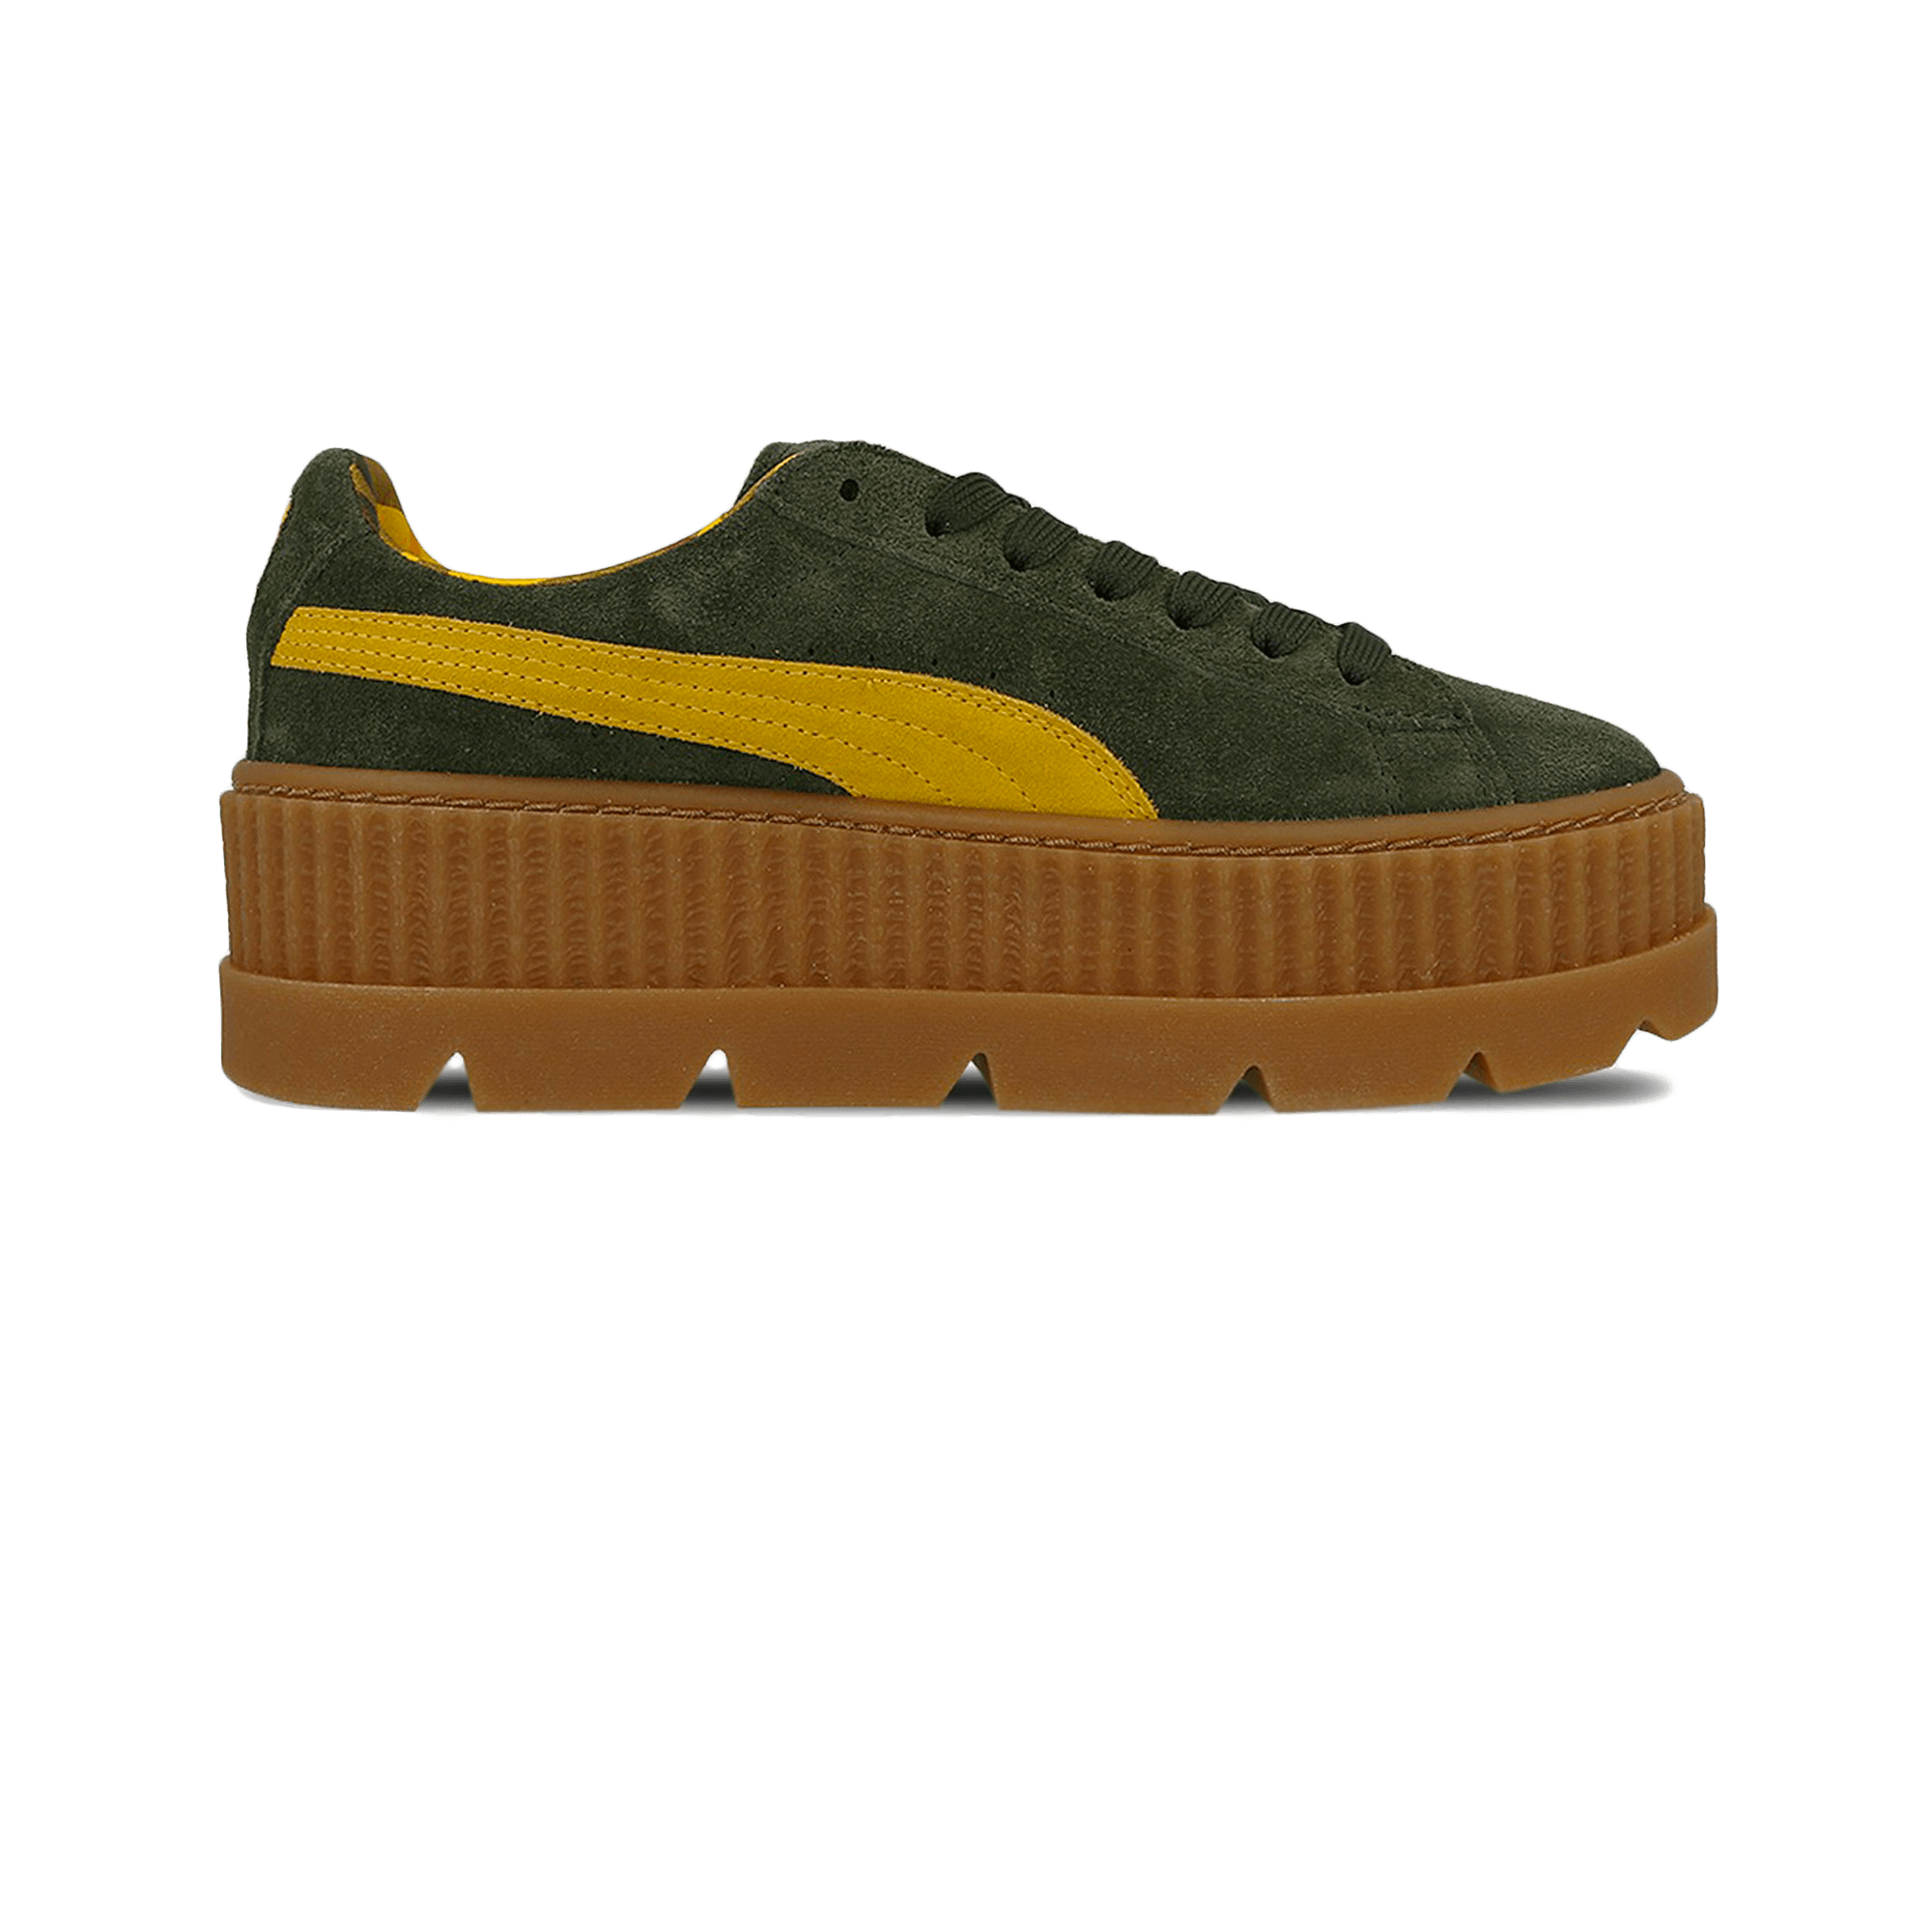 puma fenty cleated creepers donna